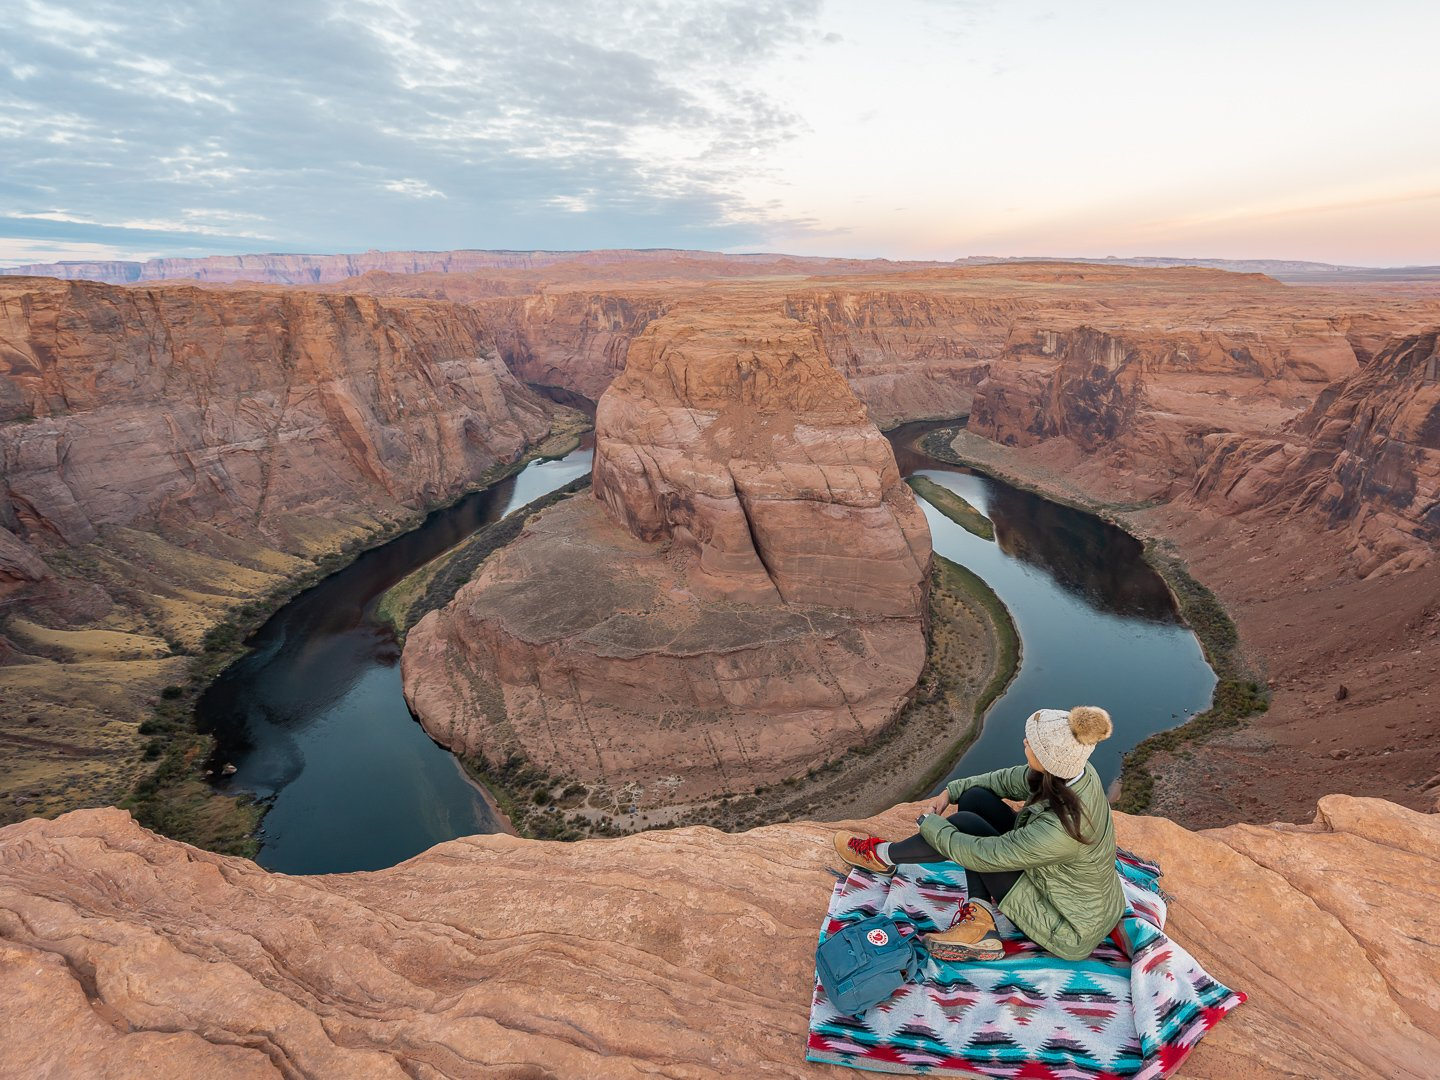 sentar-na-beira-do-Horseshoe-Bend-Arizona